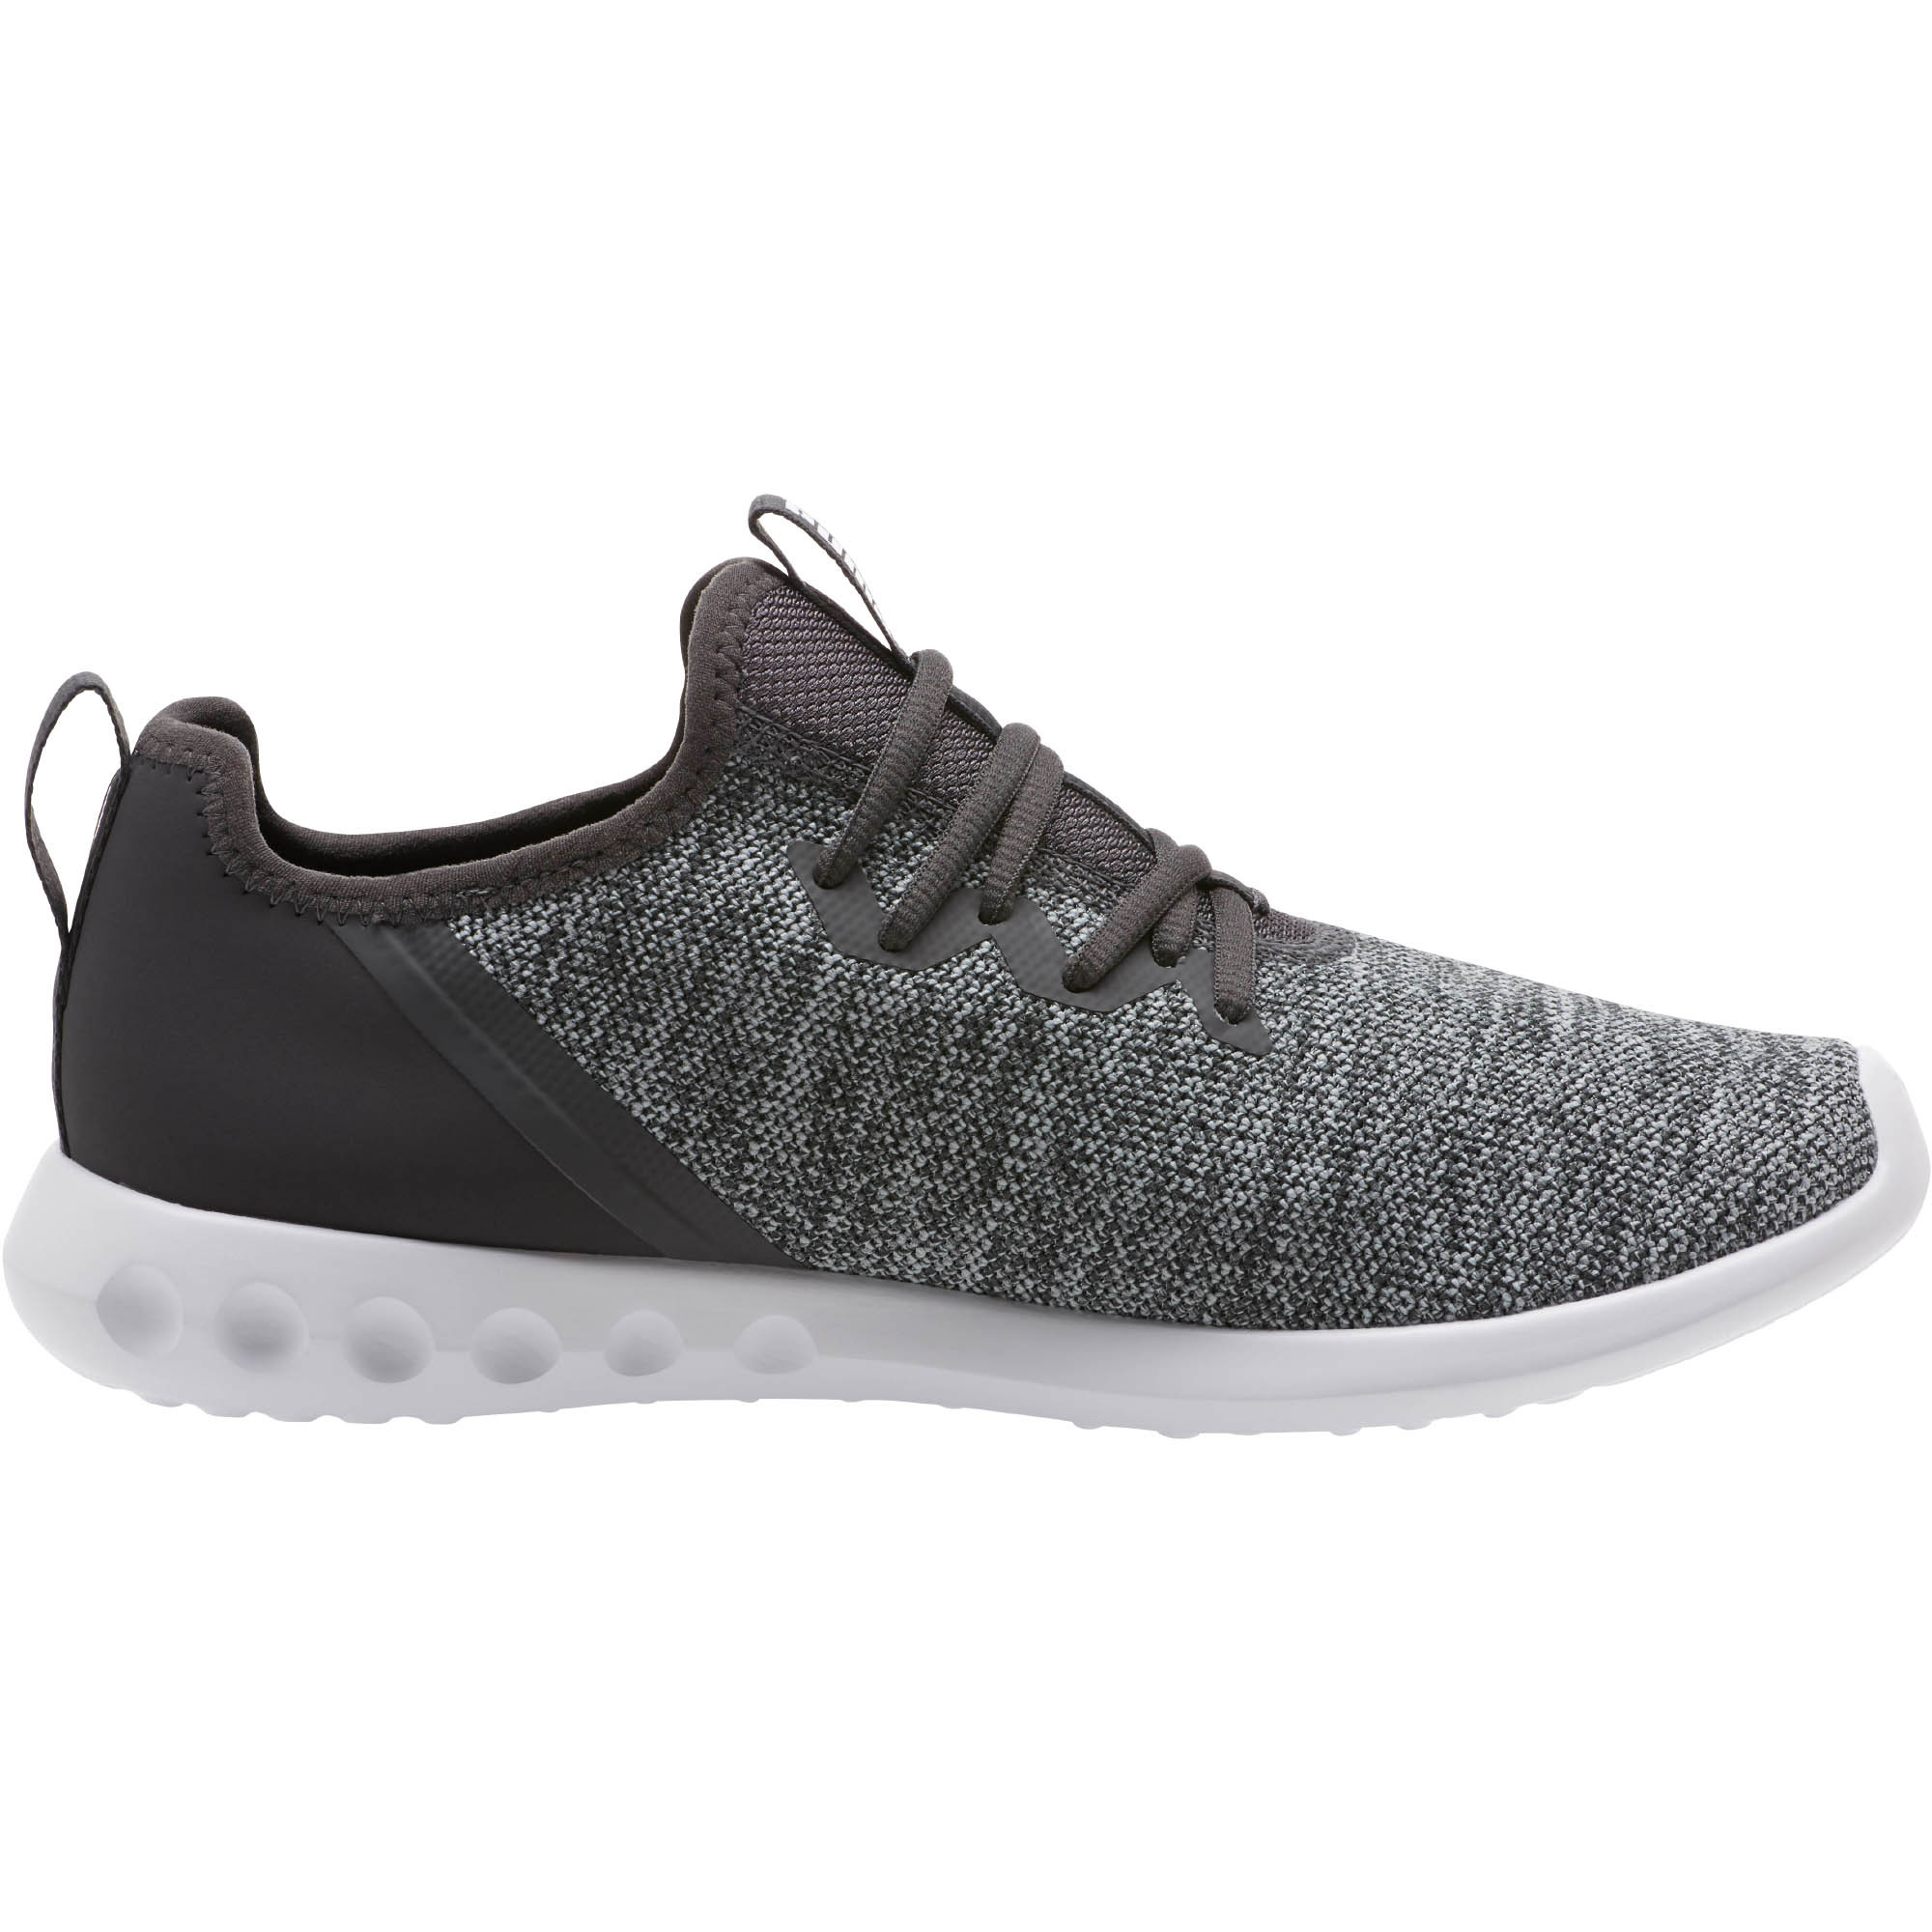 PUMA-Carson-2-X-Knit-Men-039-s-Running-Shoes-Men-Shoe-Running thumbnail 22